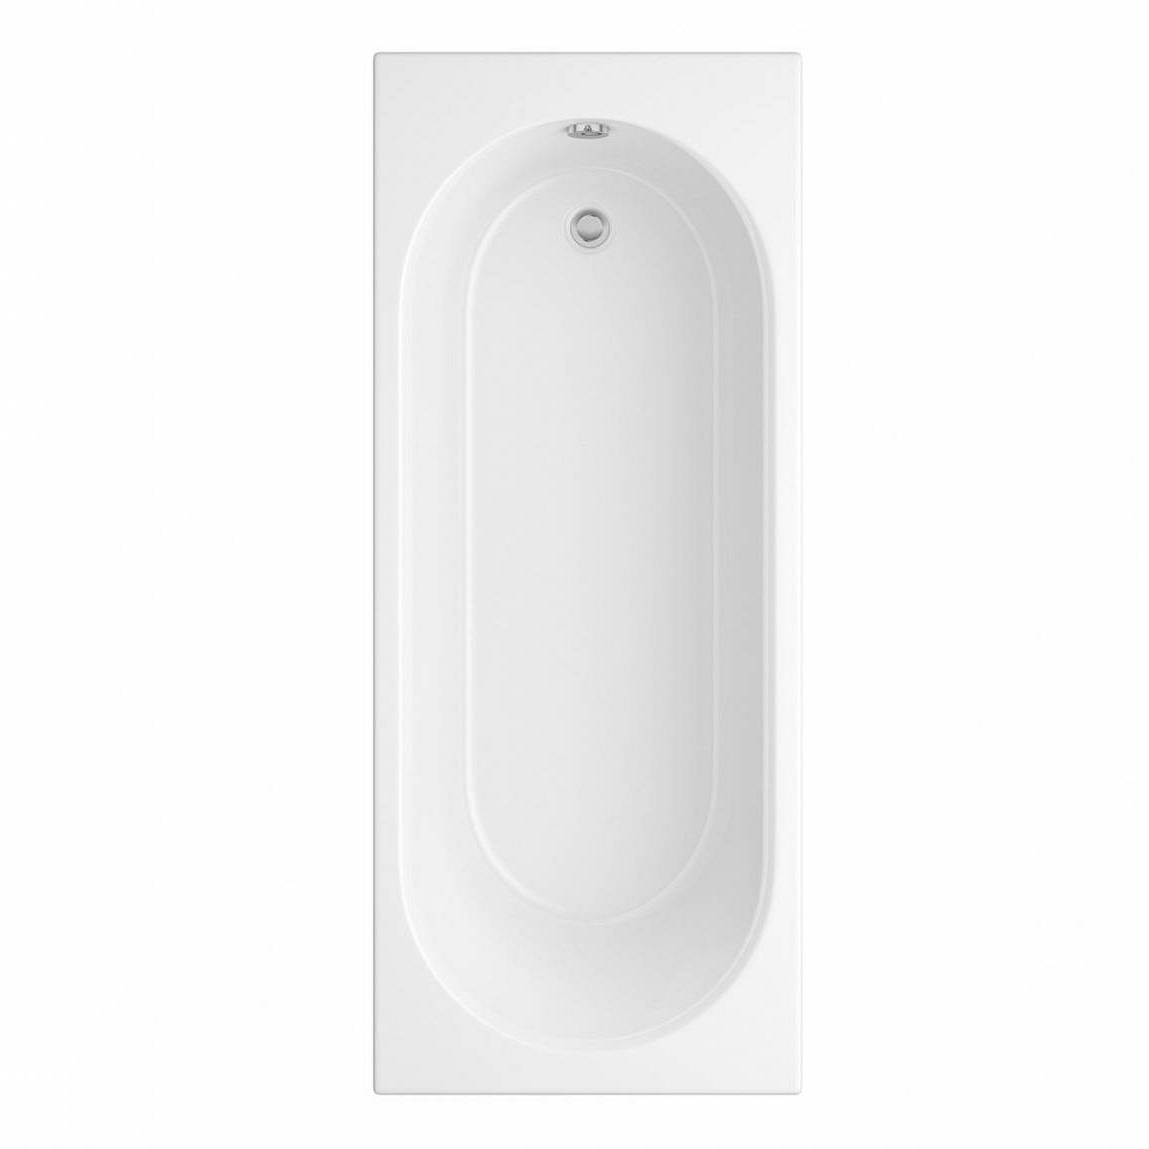 Orchard round edge single ended straight bath 1700 x 700 with acrylic front panel